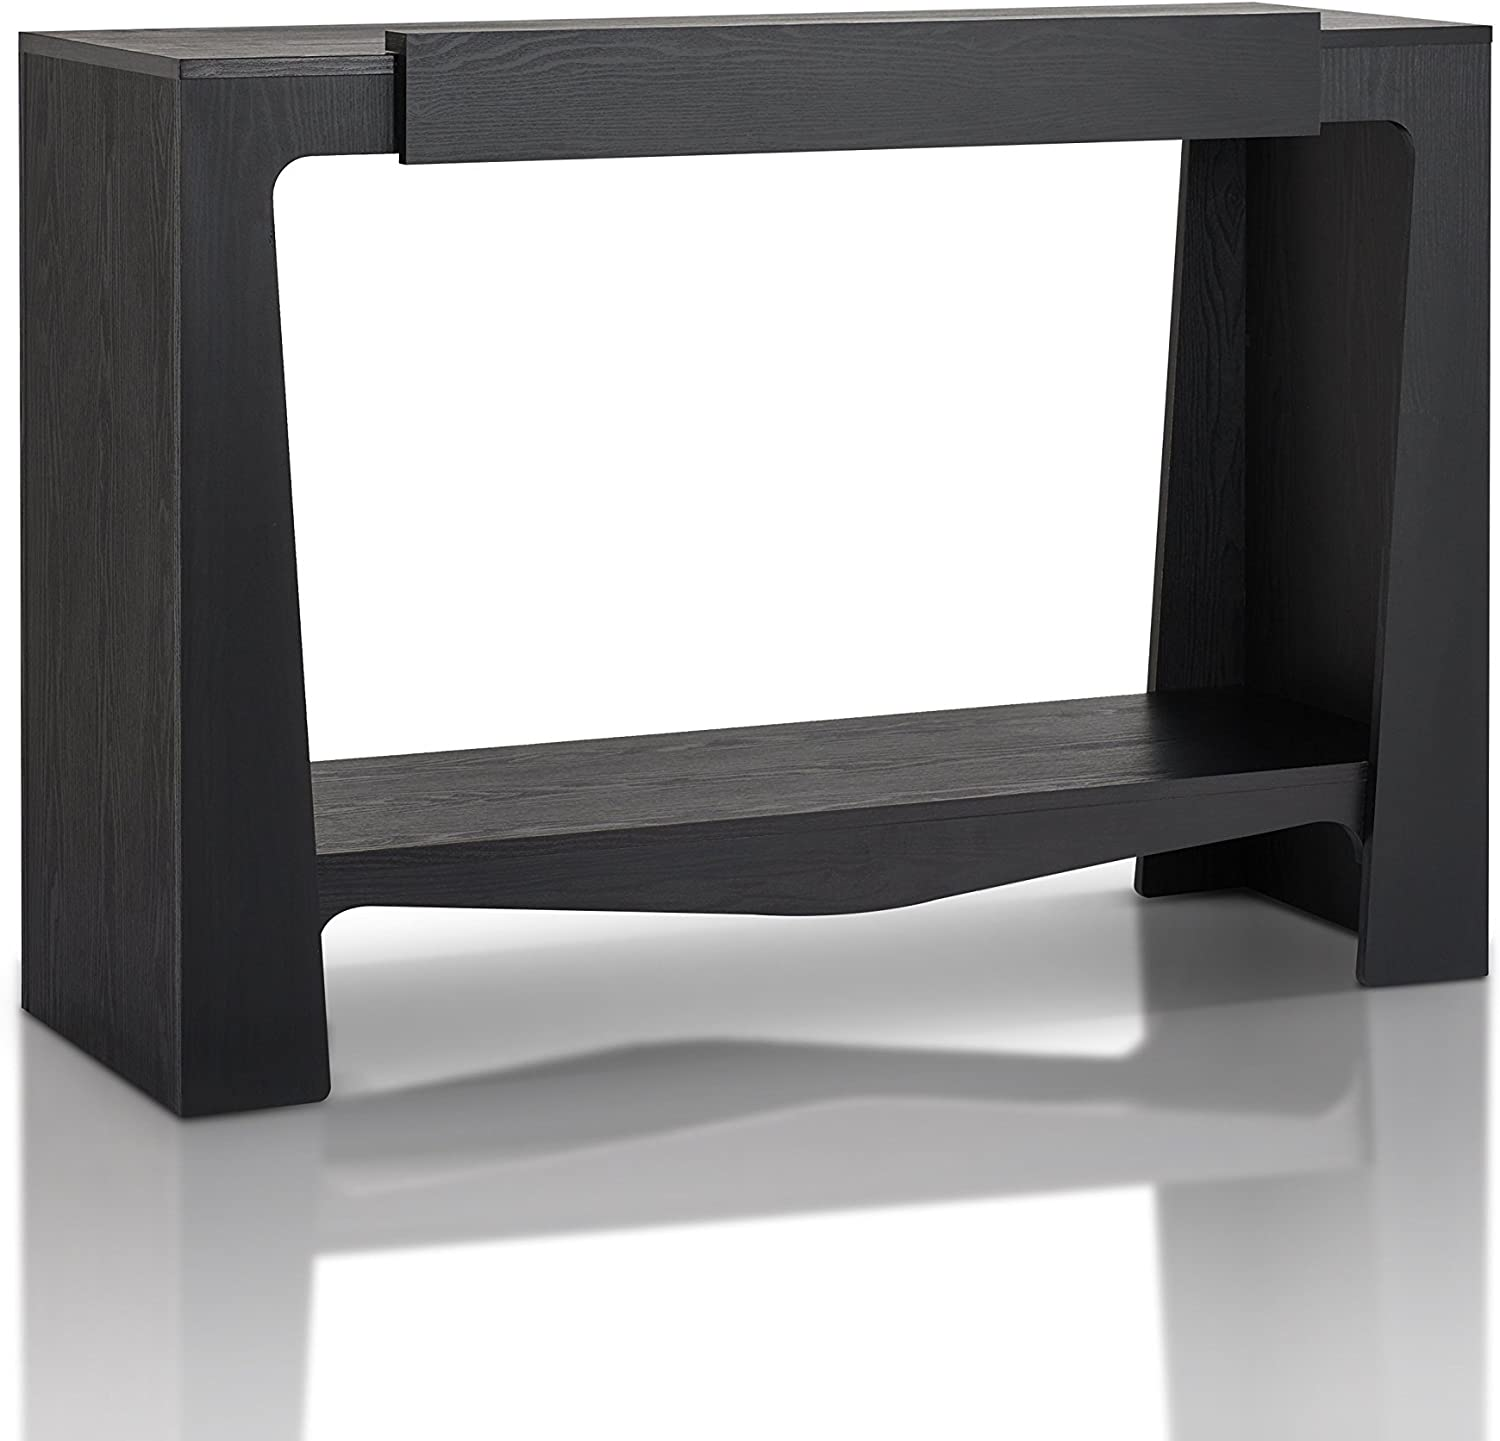 Furniture of America Delray Modern Wood 1-Drawer Console Table with Shelf, Black